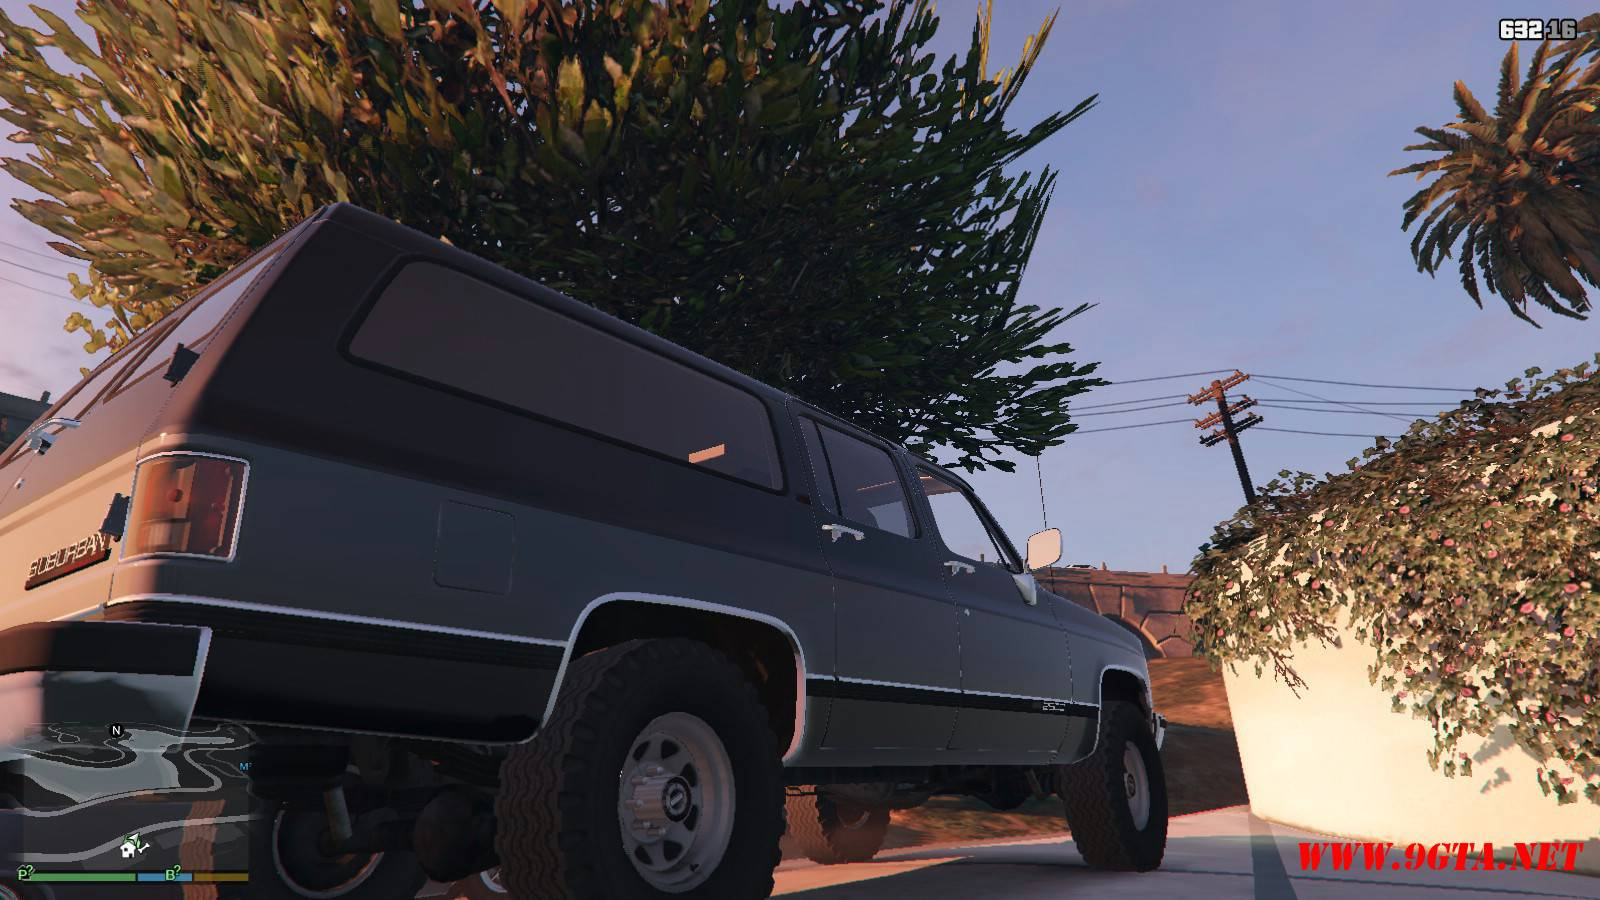 1989 GMC Suburban Mod For GTA 5 (8)